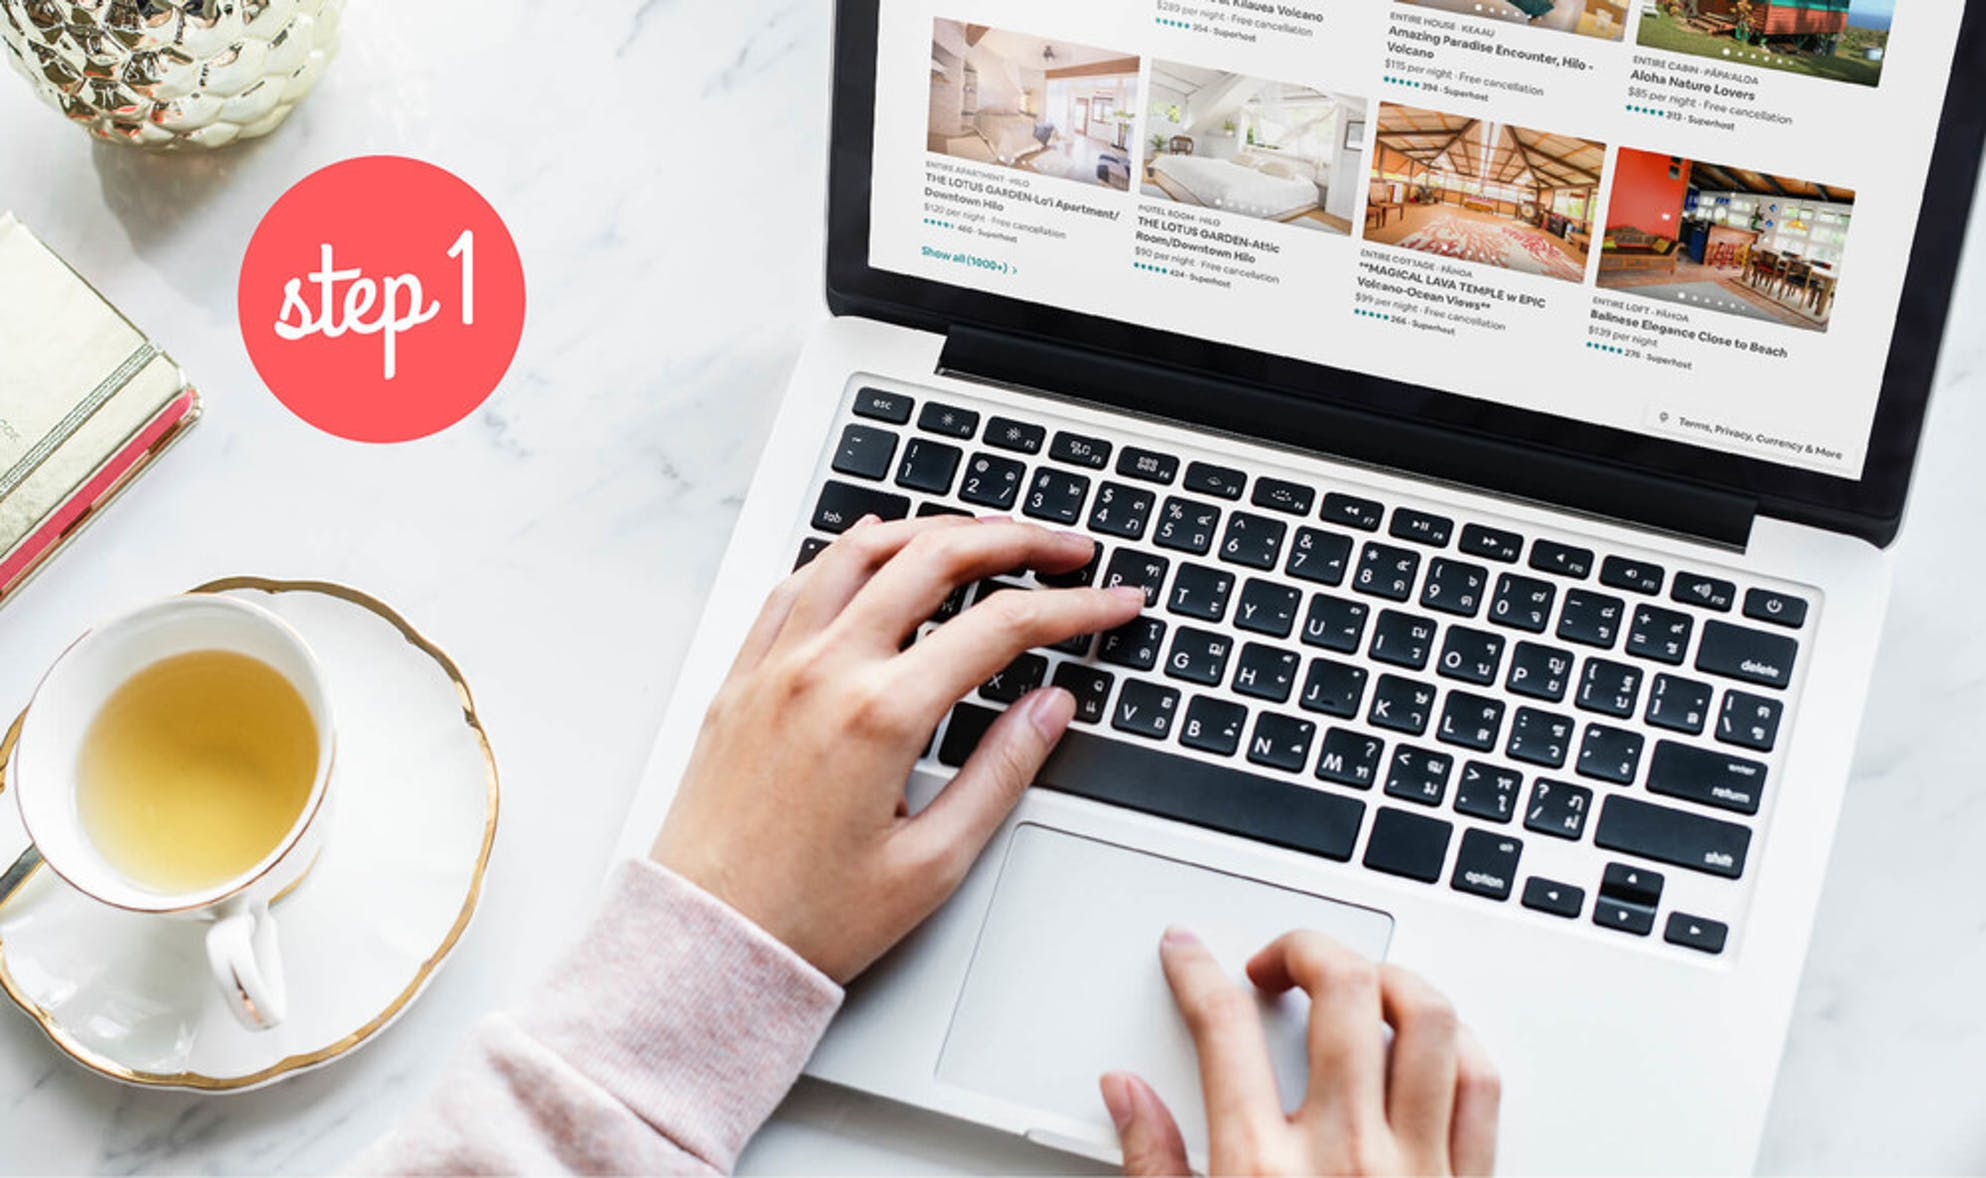 Woman calculating the value of her property on airbnb.com